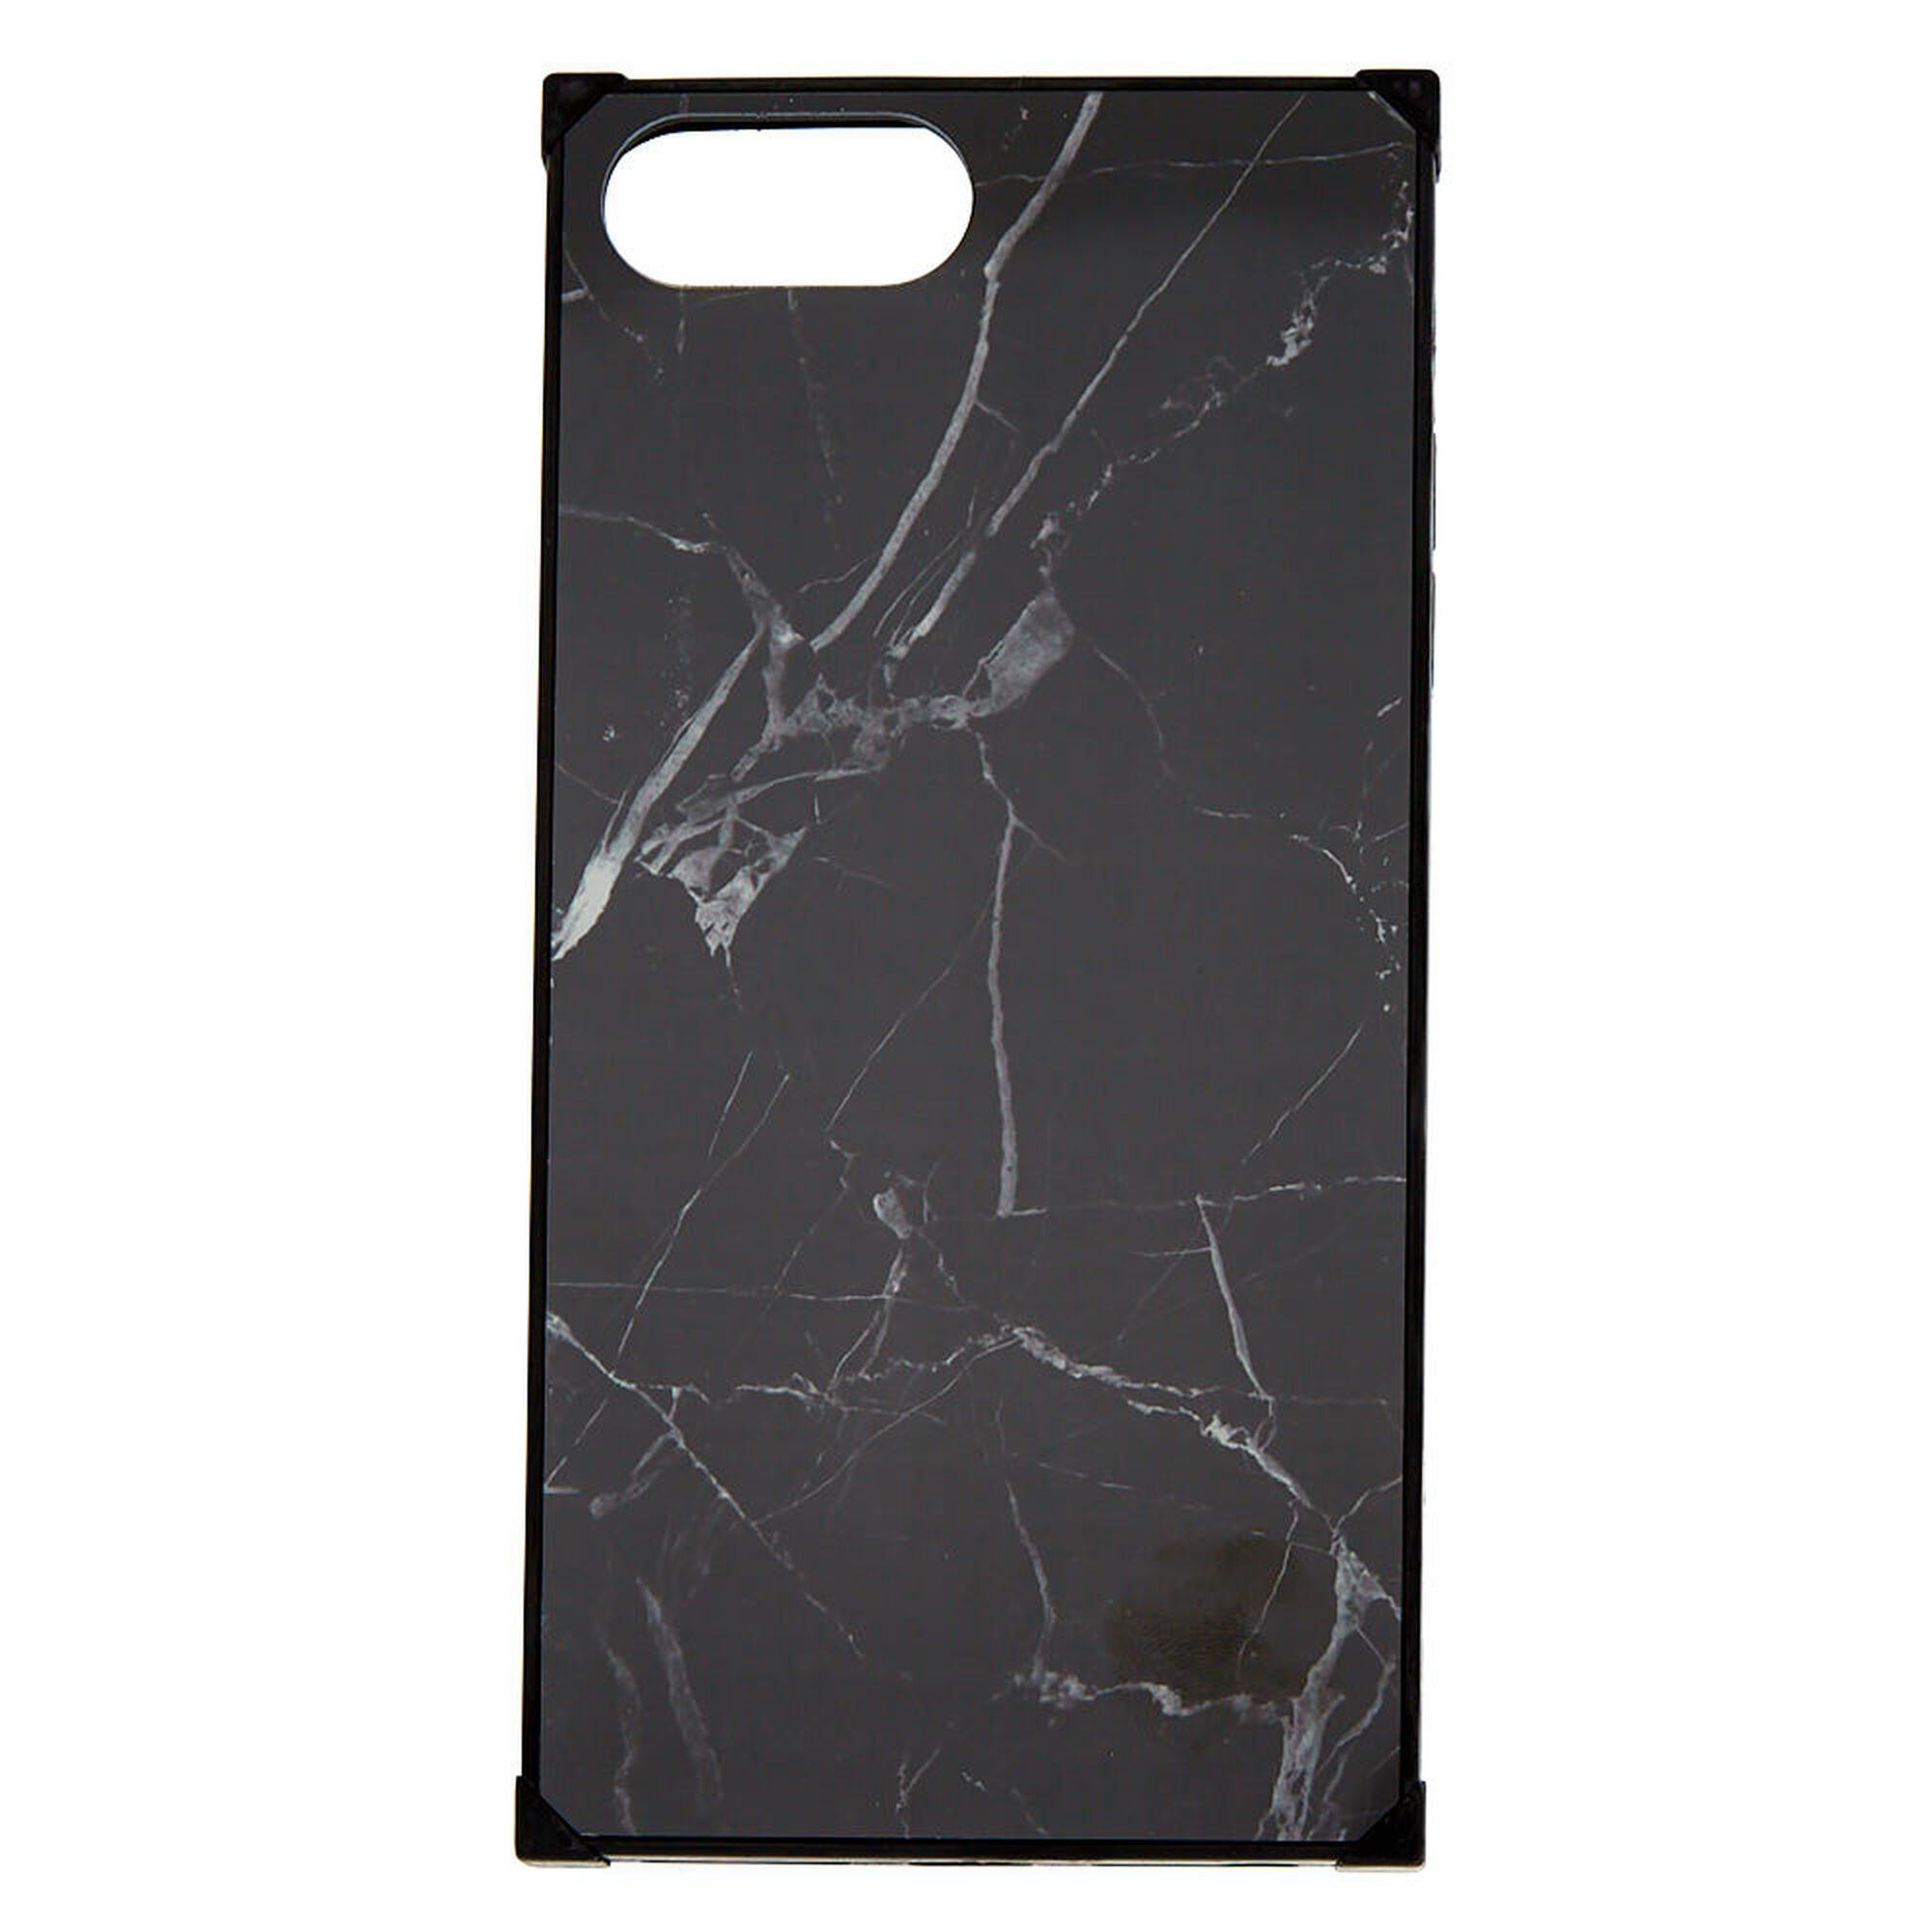 finest selection 4ff81 24ceb Marble Square Phone Case - Fits iPhone 6/7/8 Plus